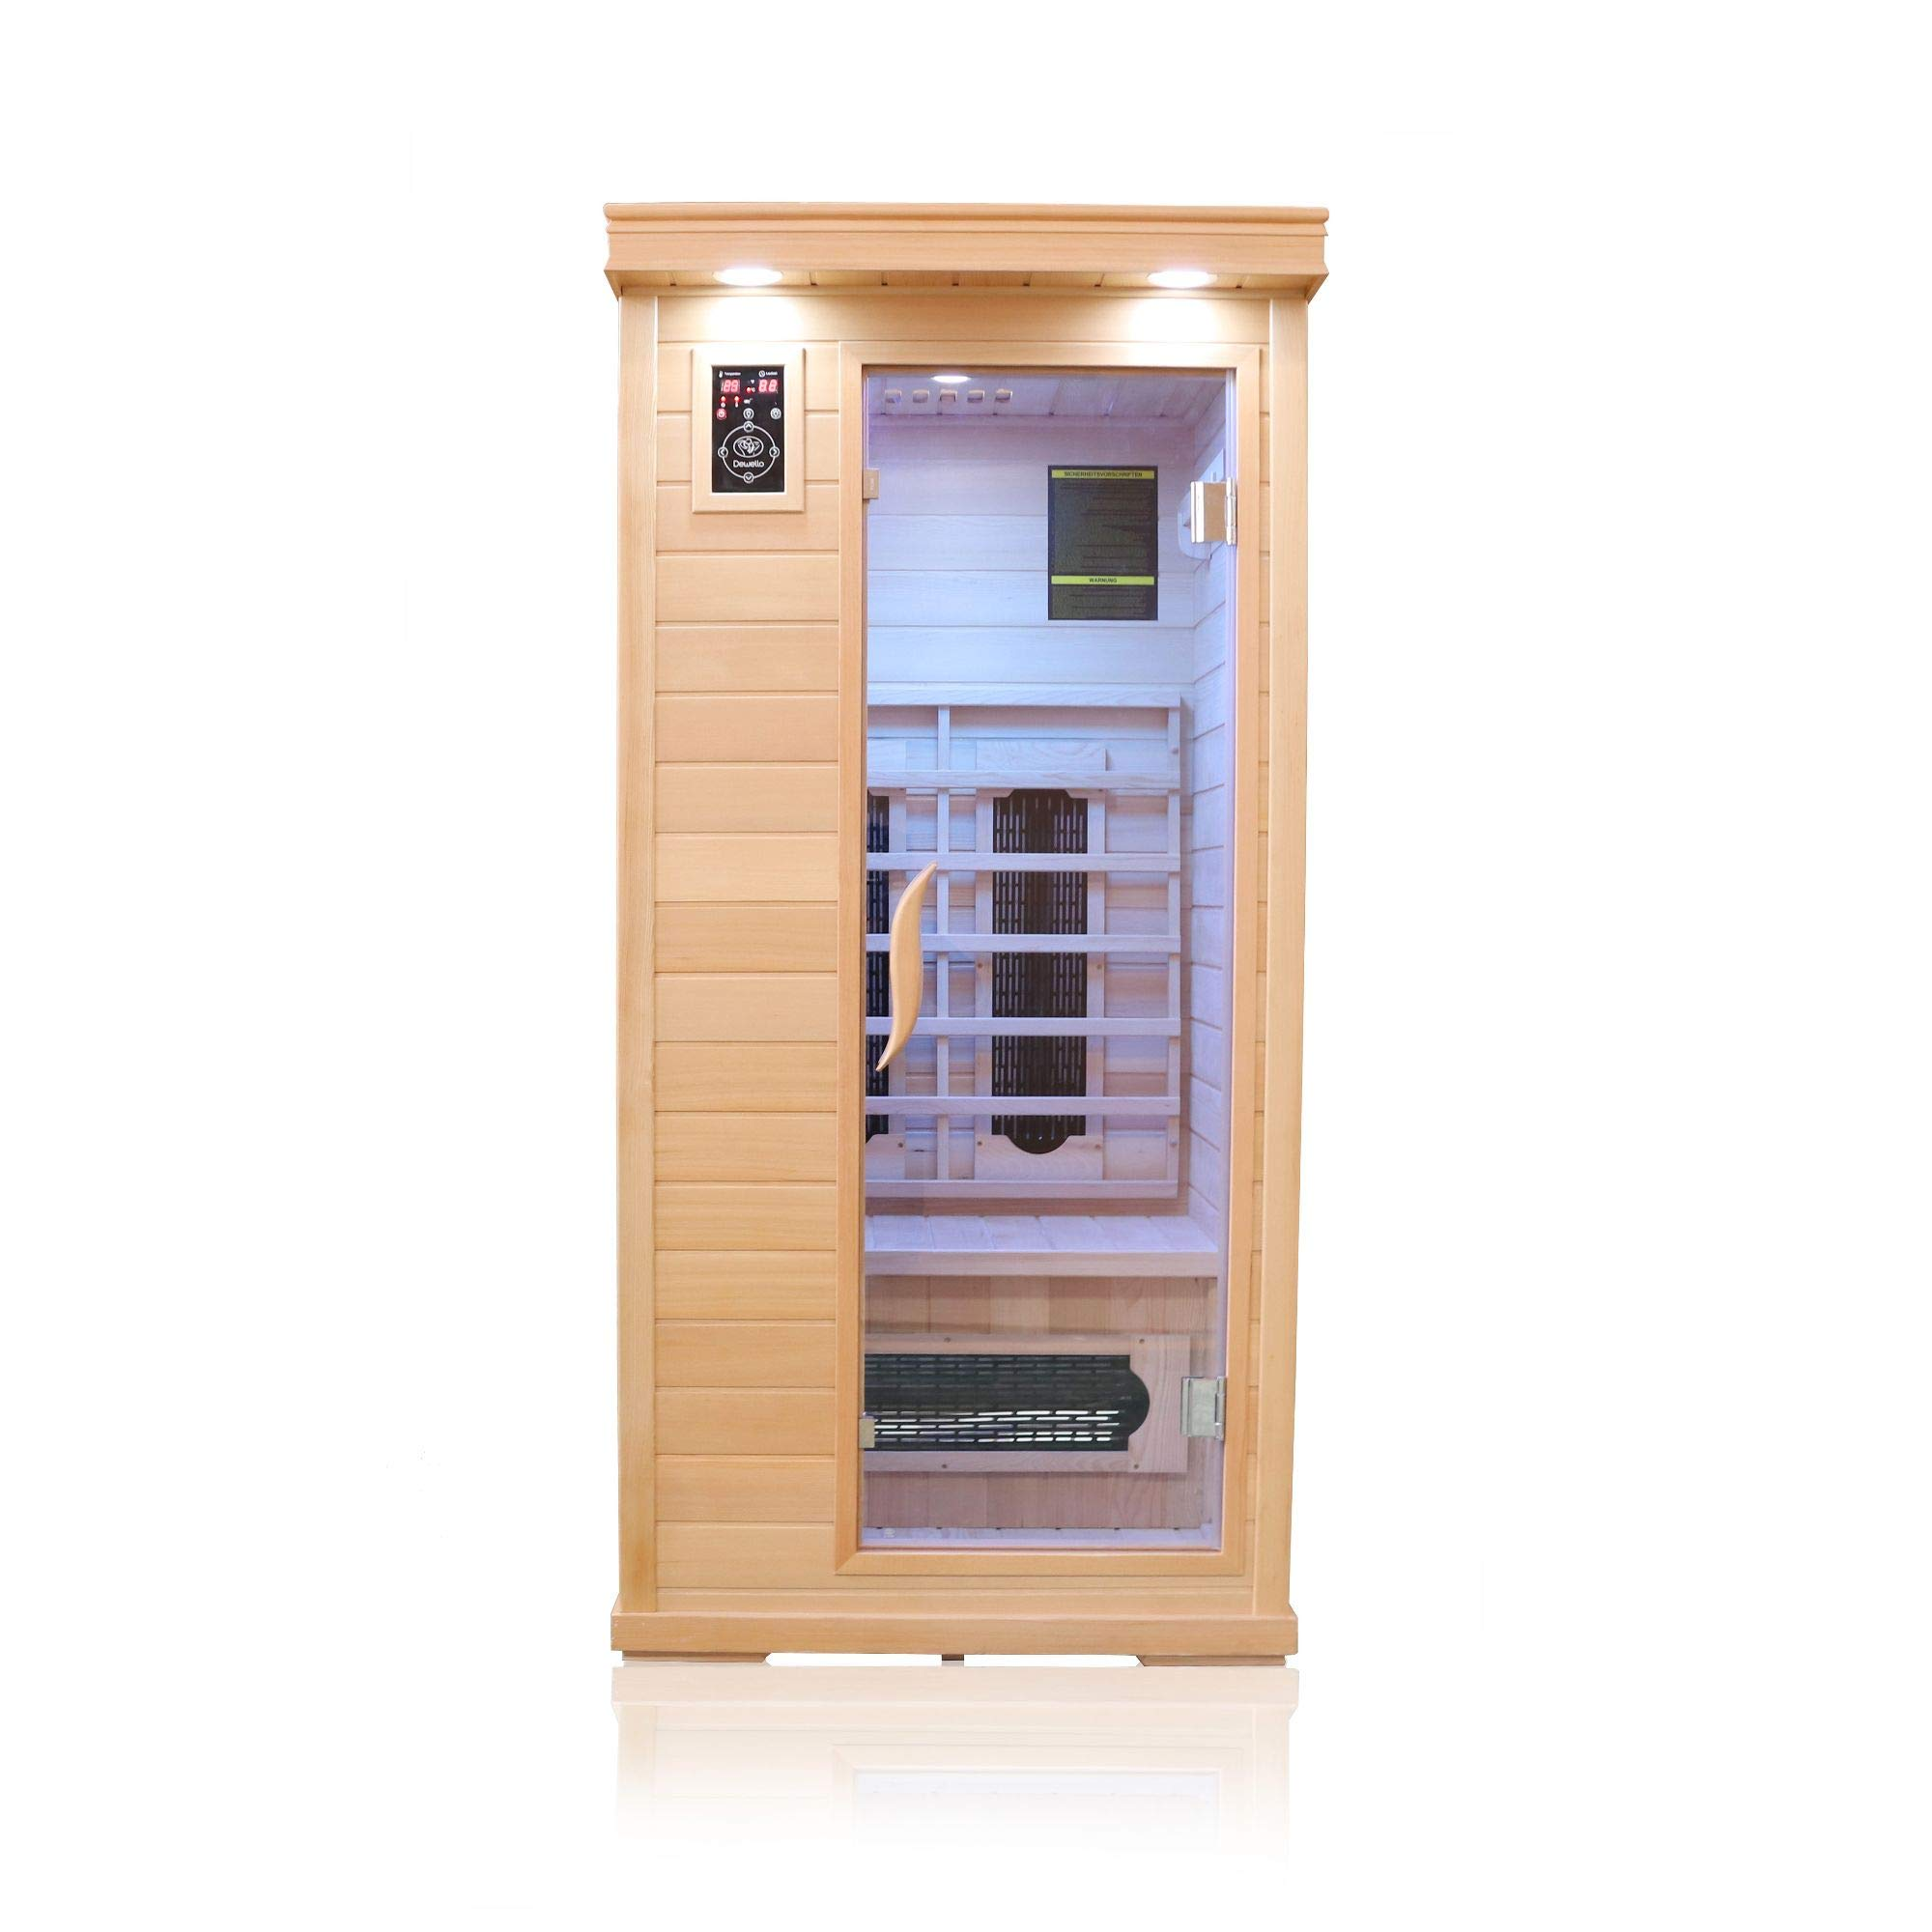 Dewello Infrarotkabine WINDSOR (90x90cm) Infrarotsauna für 1 Person